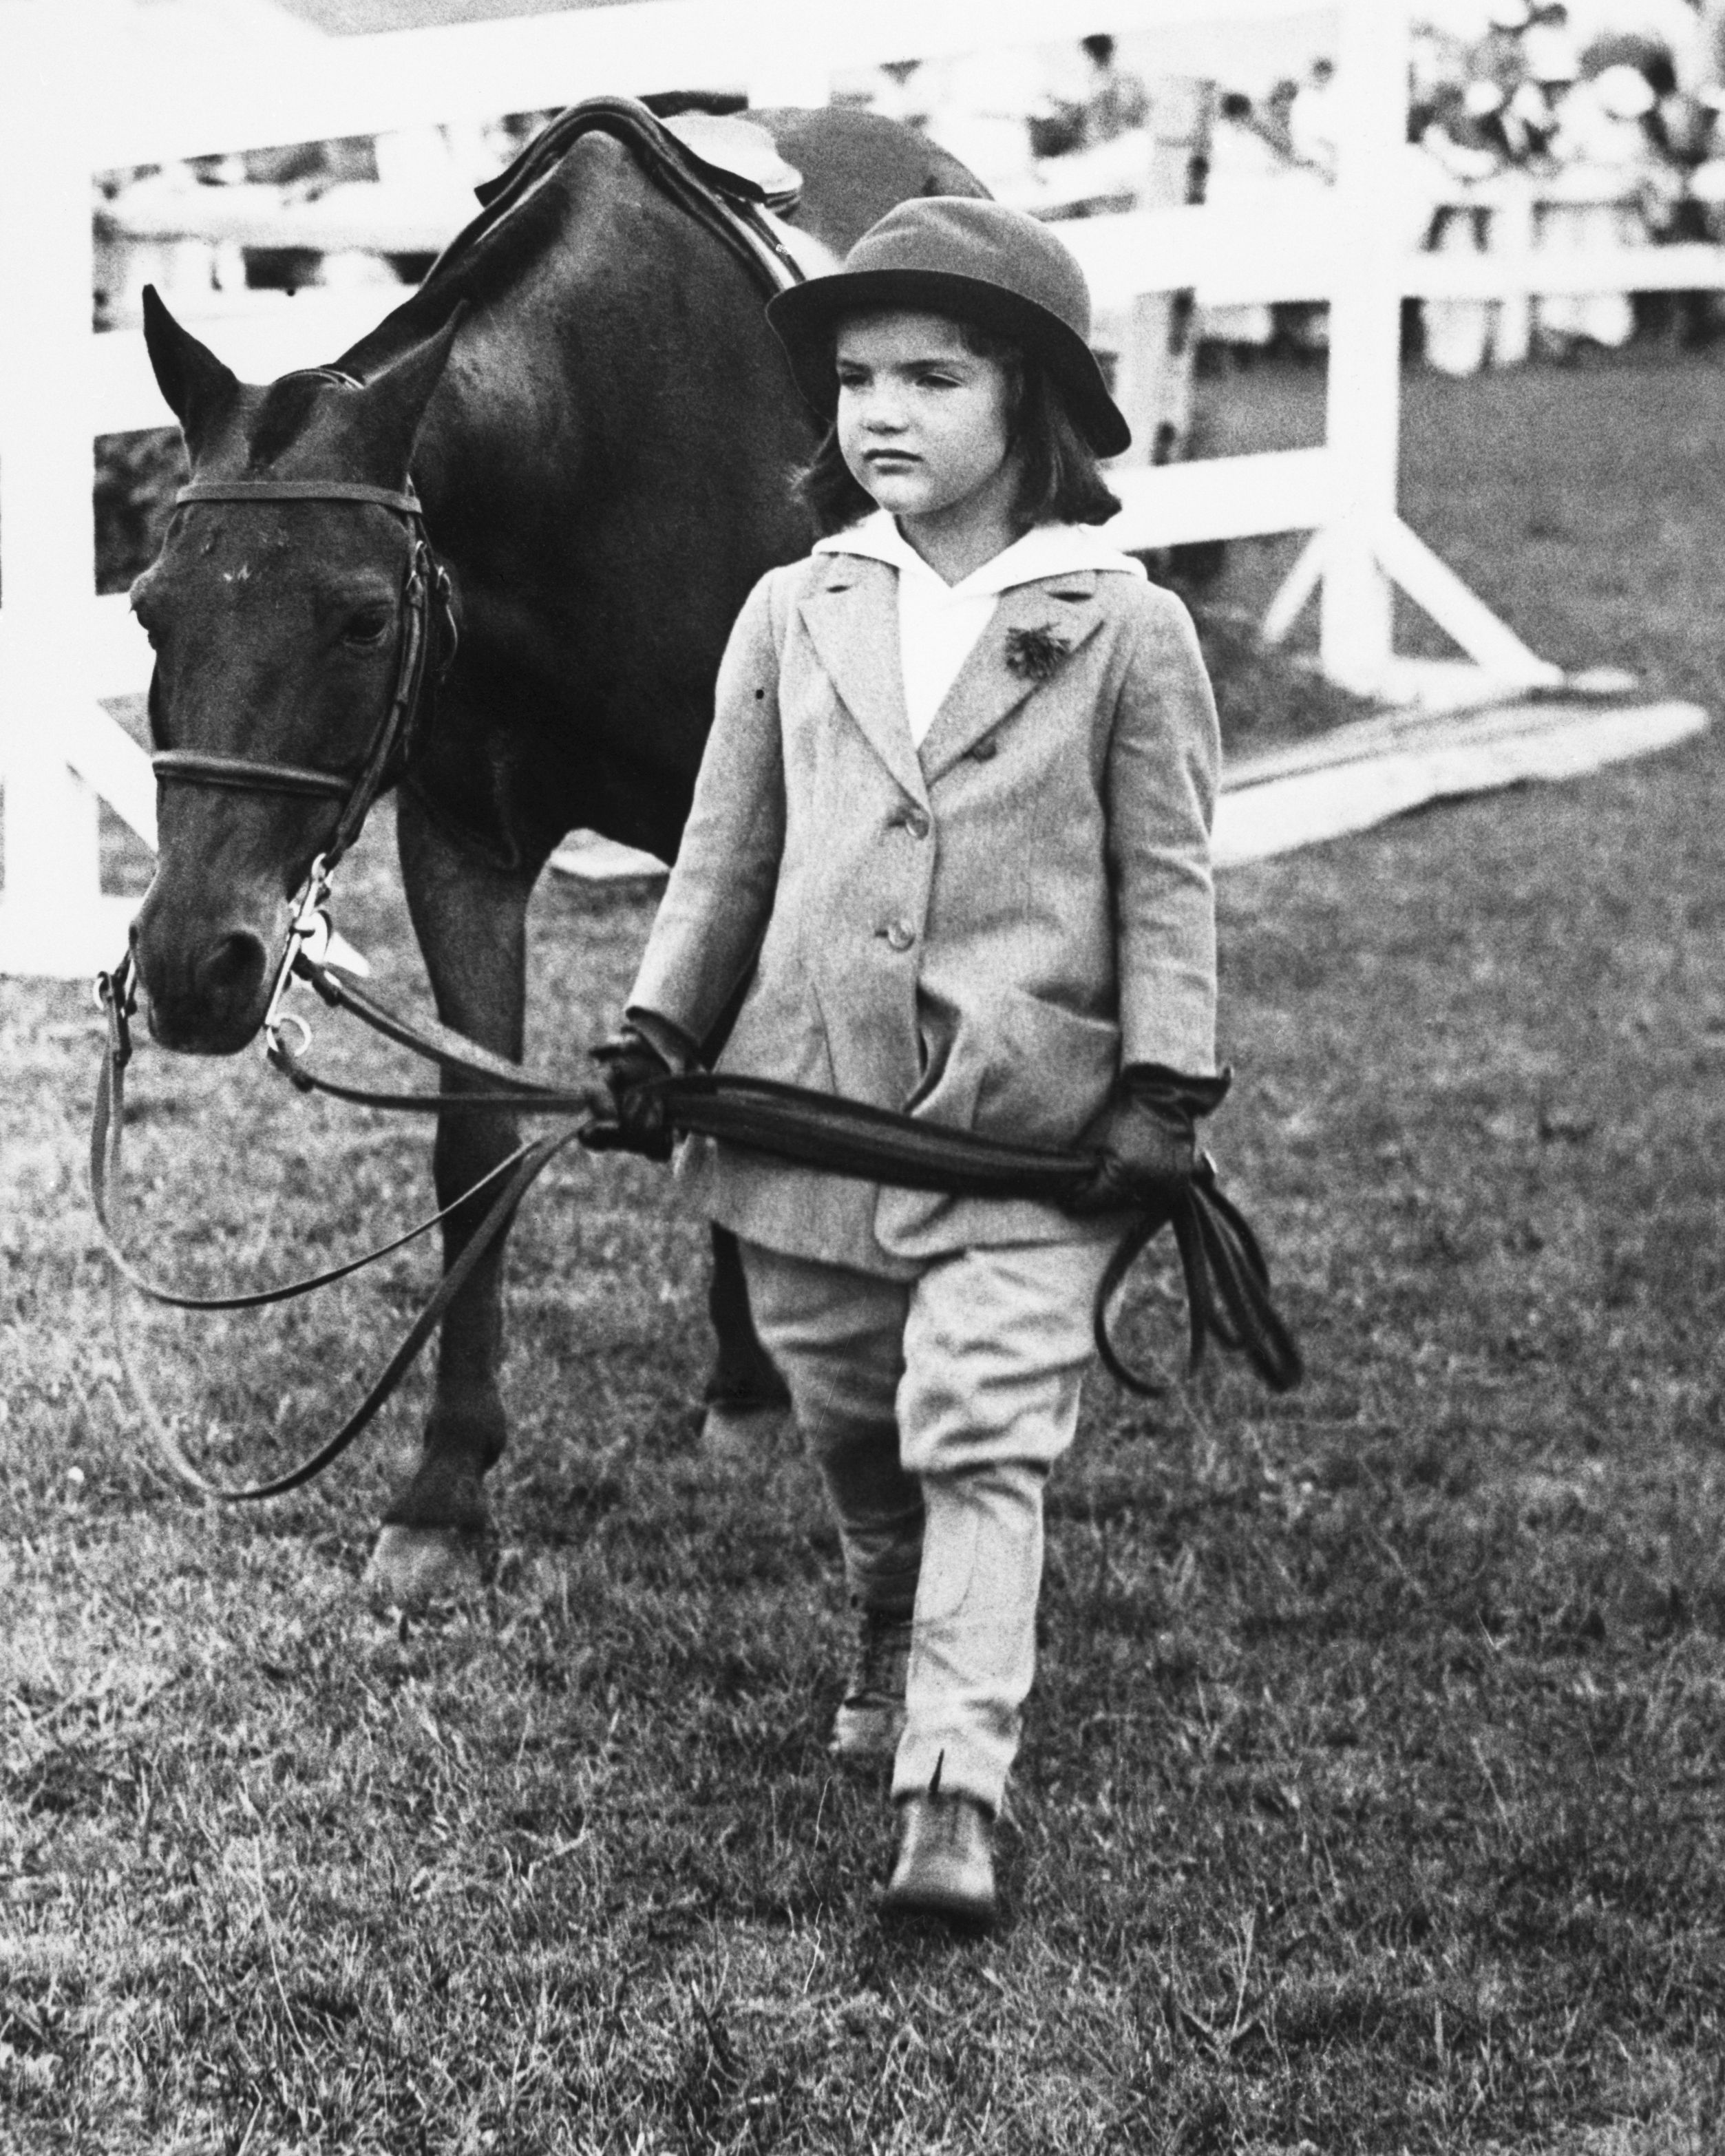 A young Jaqueline Kennedy (née Bouvier), leading a pony at a Southampton horse show.